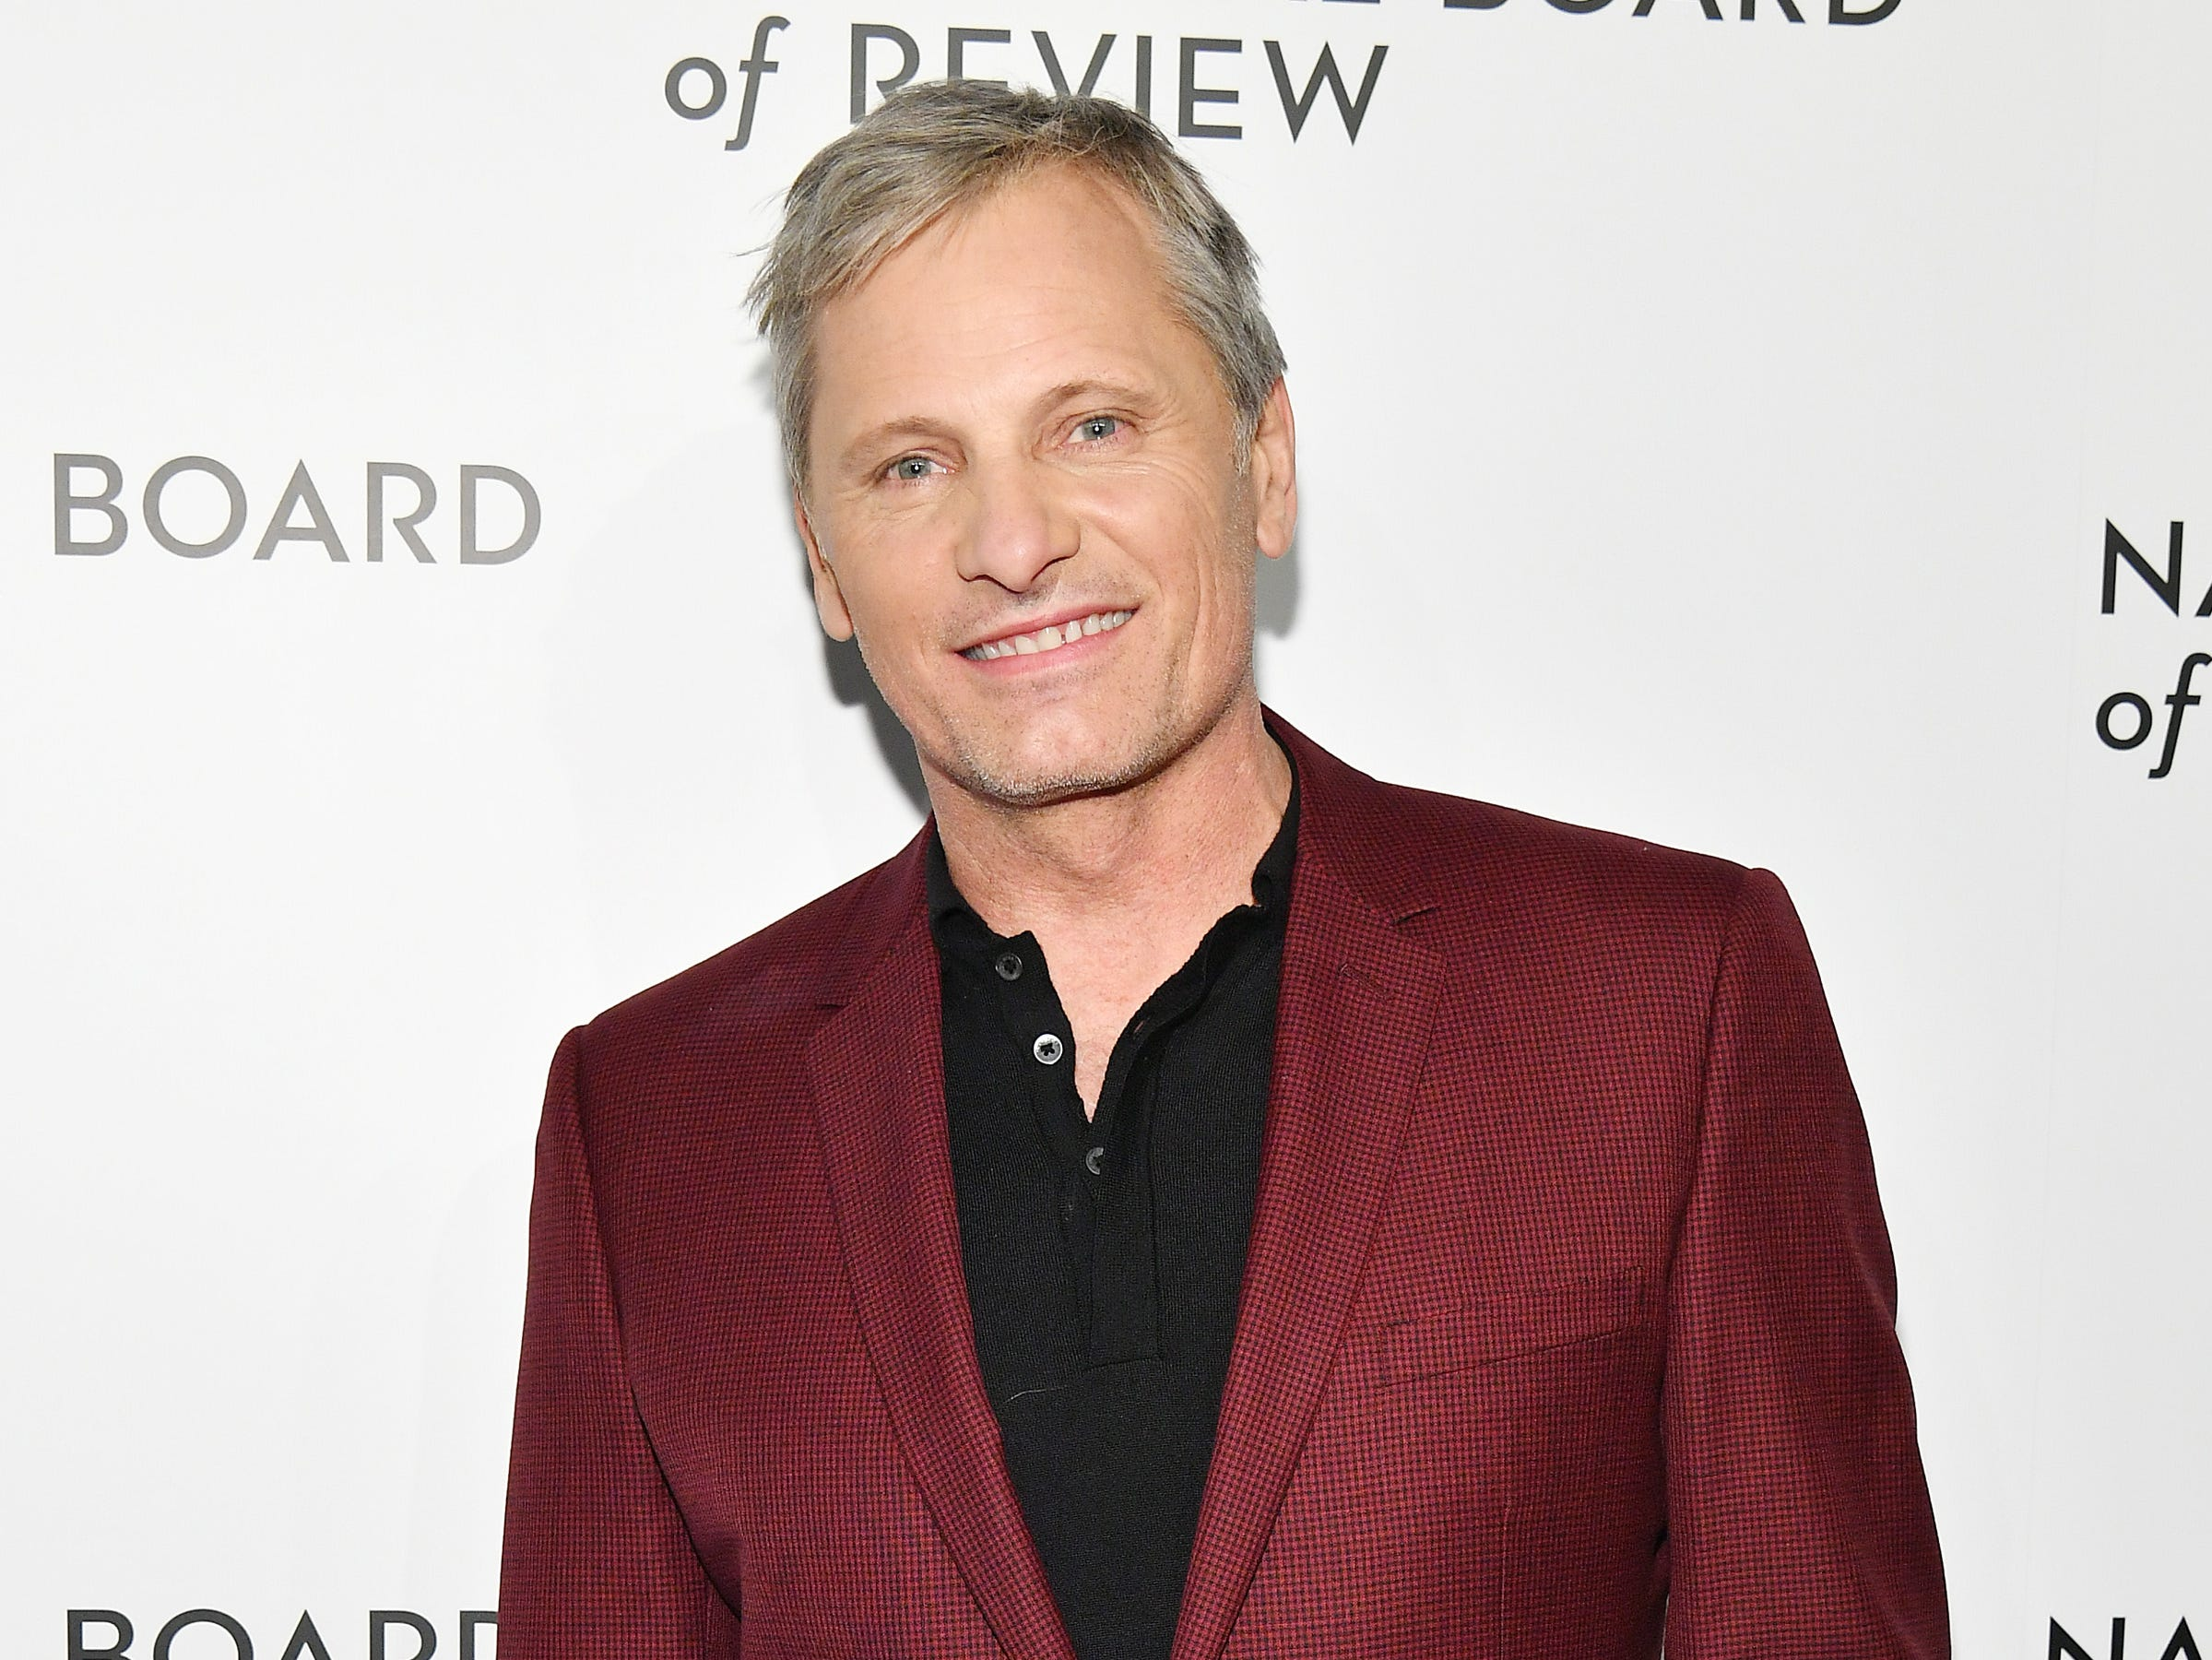 NEW YORK, NY - JANUARY 08: Viggo Mortensen attends The National Board of Review Annual Awards Gala at Cipriani 42nd Street on January 8, 2019 in New York City.  (Photo by Dia Dipasupil/Getty Images for National Board of Review) ORG XMIT: 775259363 ORIG FILE ID: 1079453094